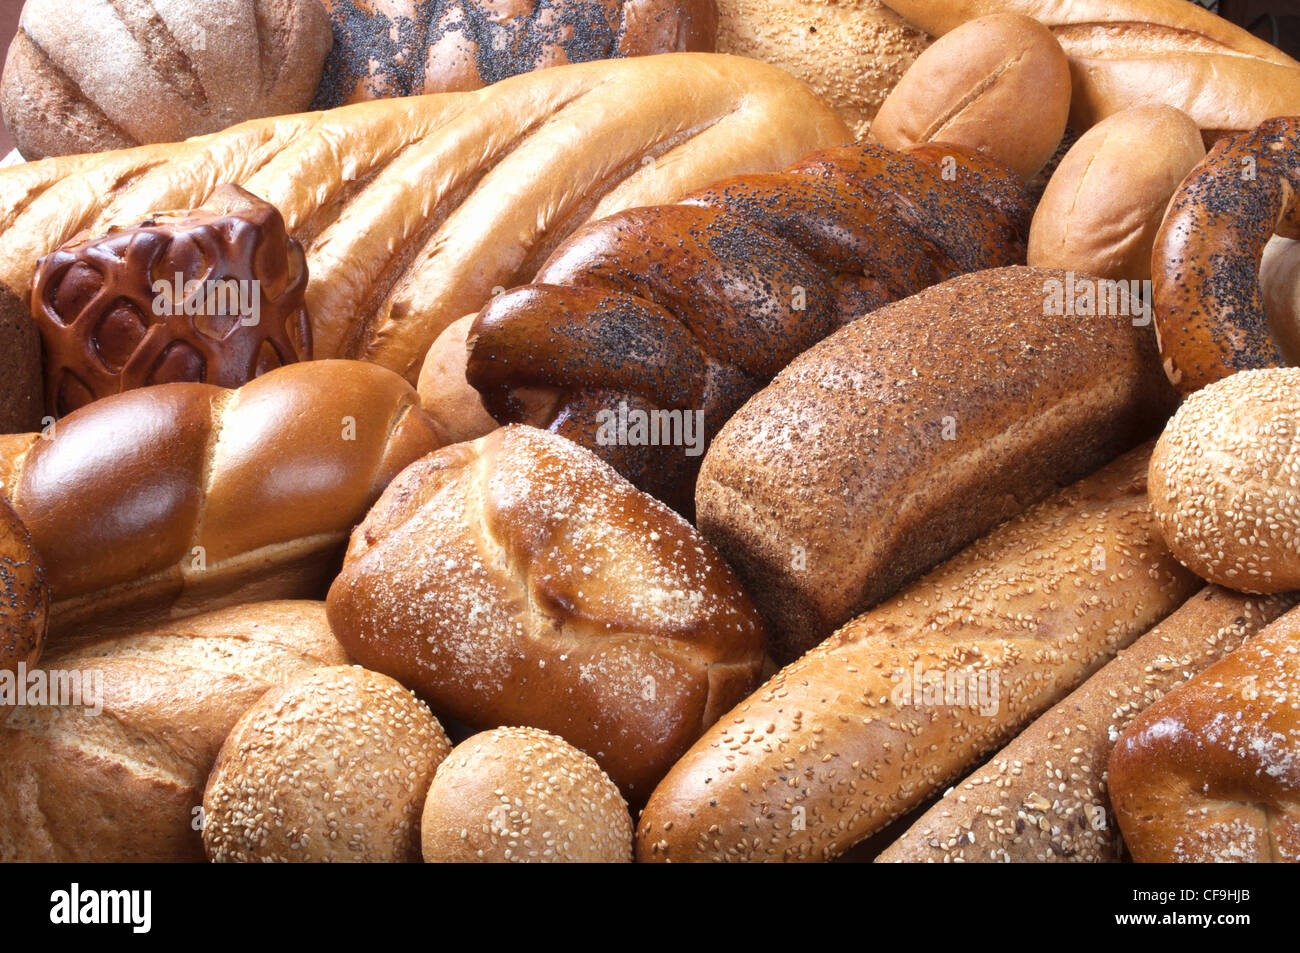 background with assortment of fresh pastry - Stock Image